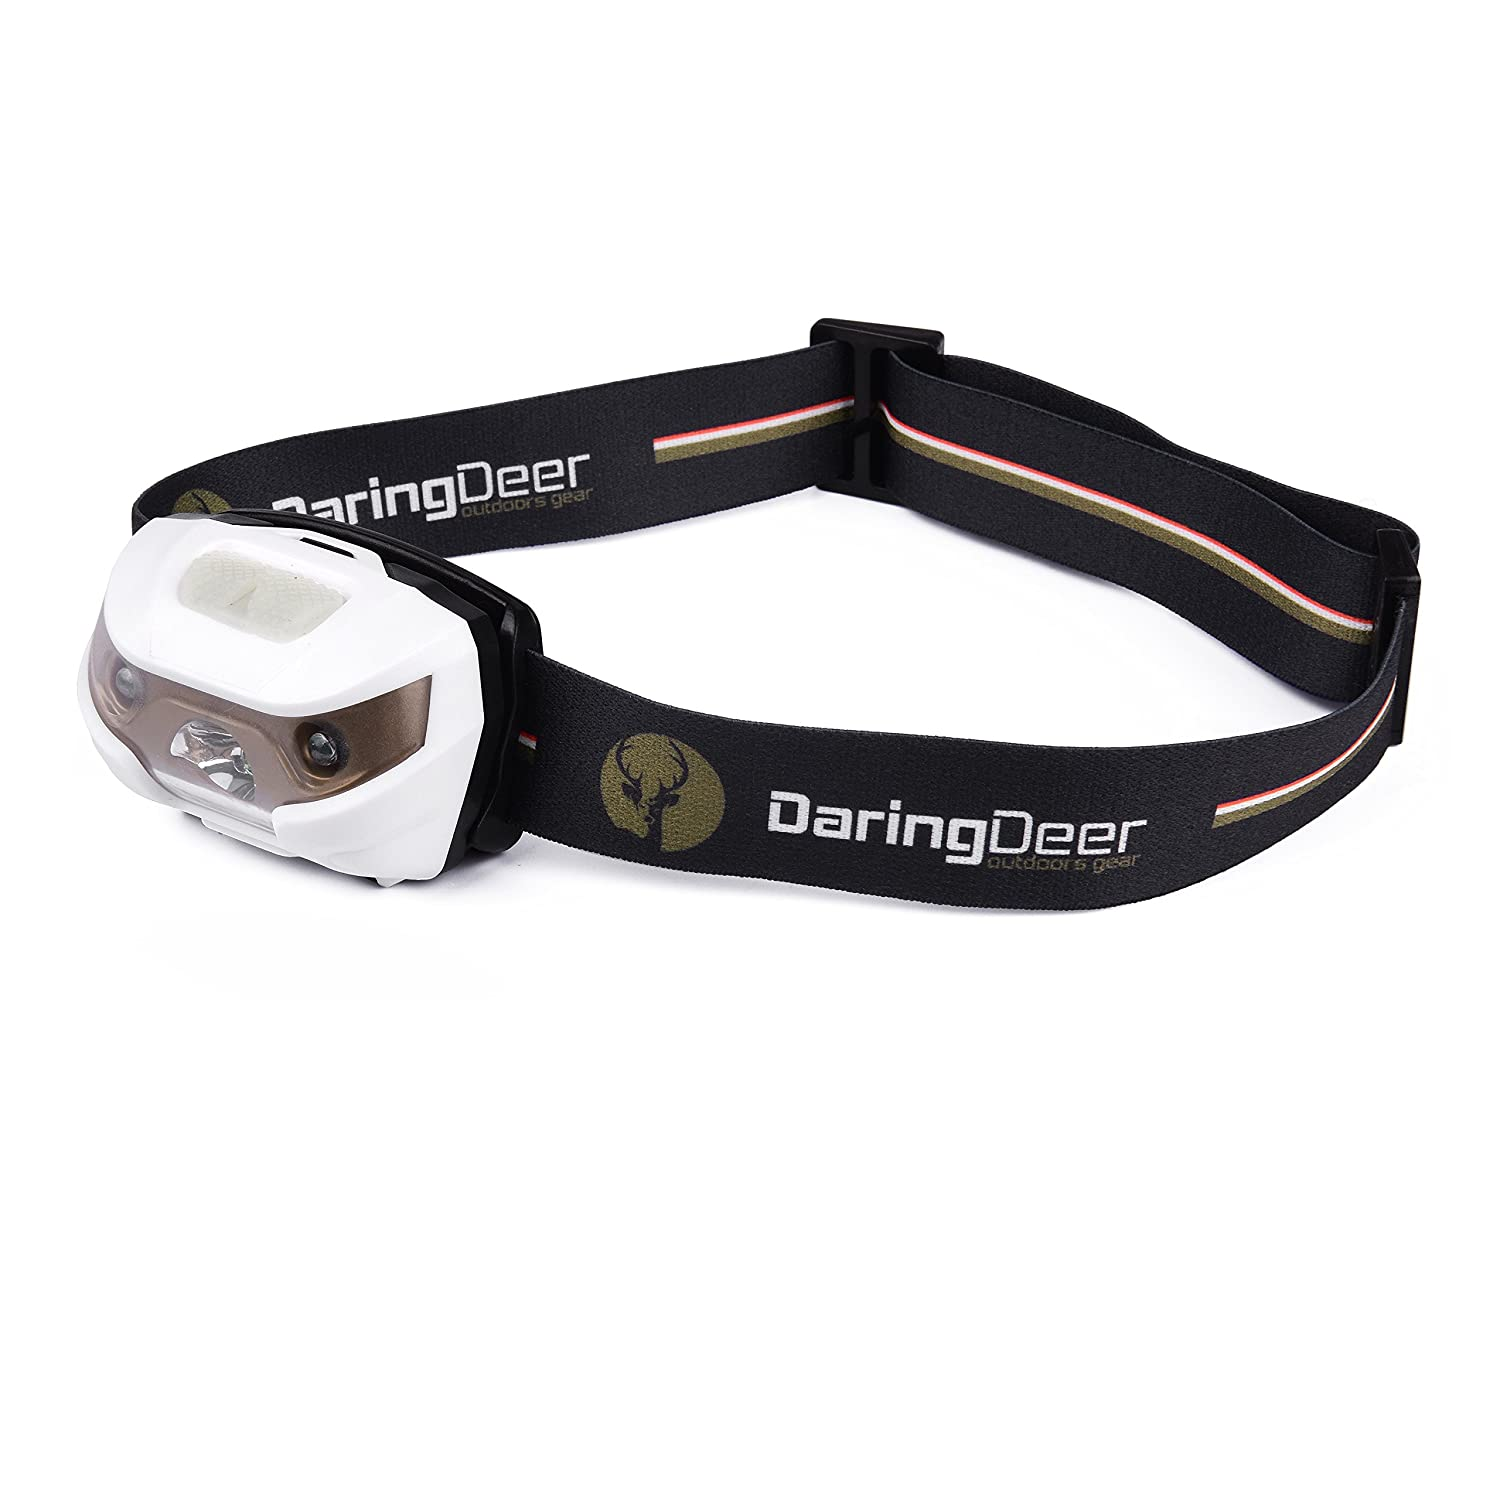 DaringDeer LED Stirnlampe